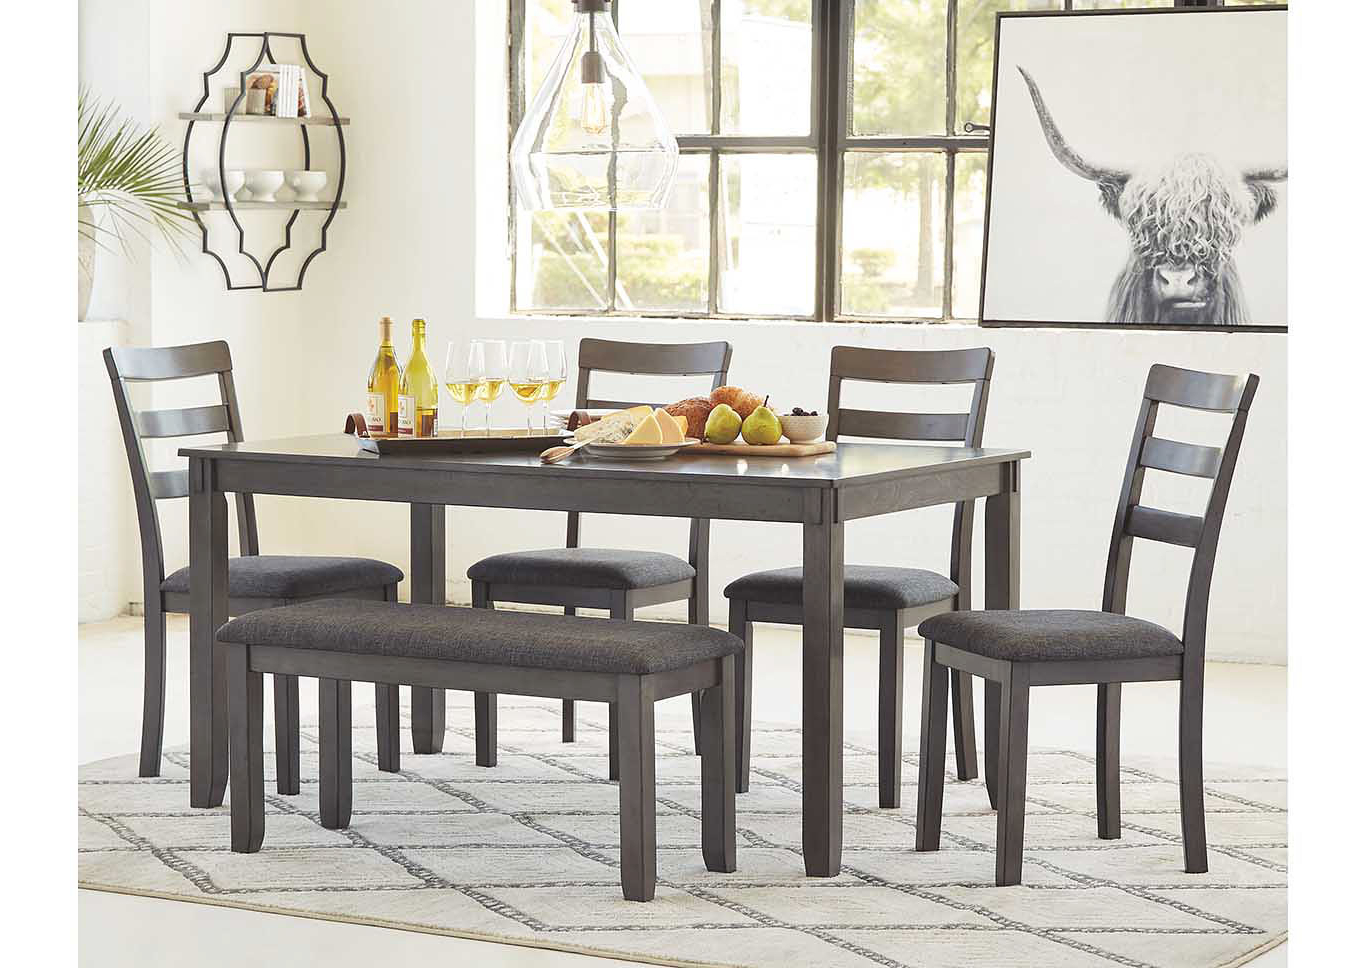 Ivan Smith Bridson Gray Dining Table W/chair And Bench (Set for Most Popular Transitional 6-Seating Casual Dining Tables